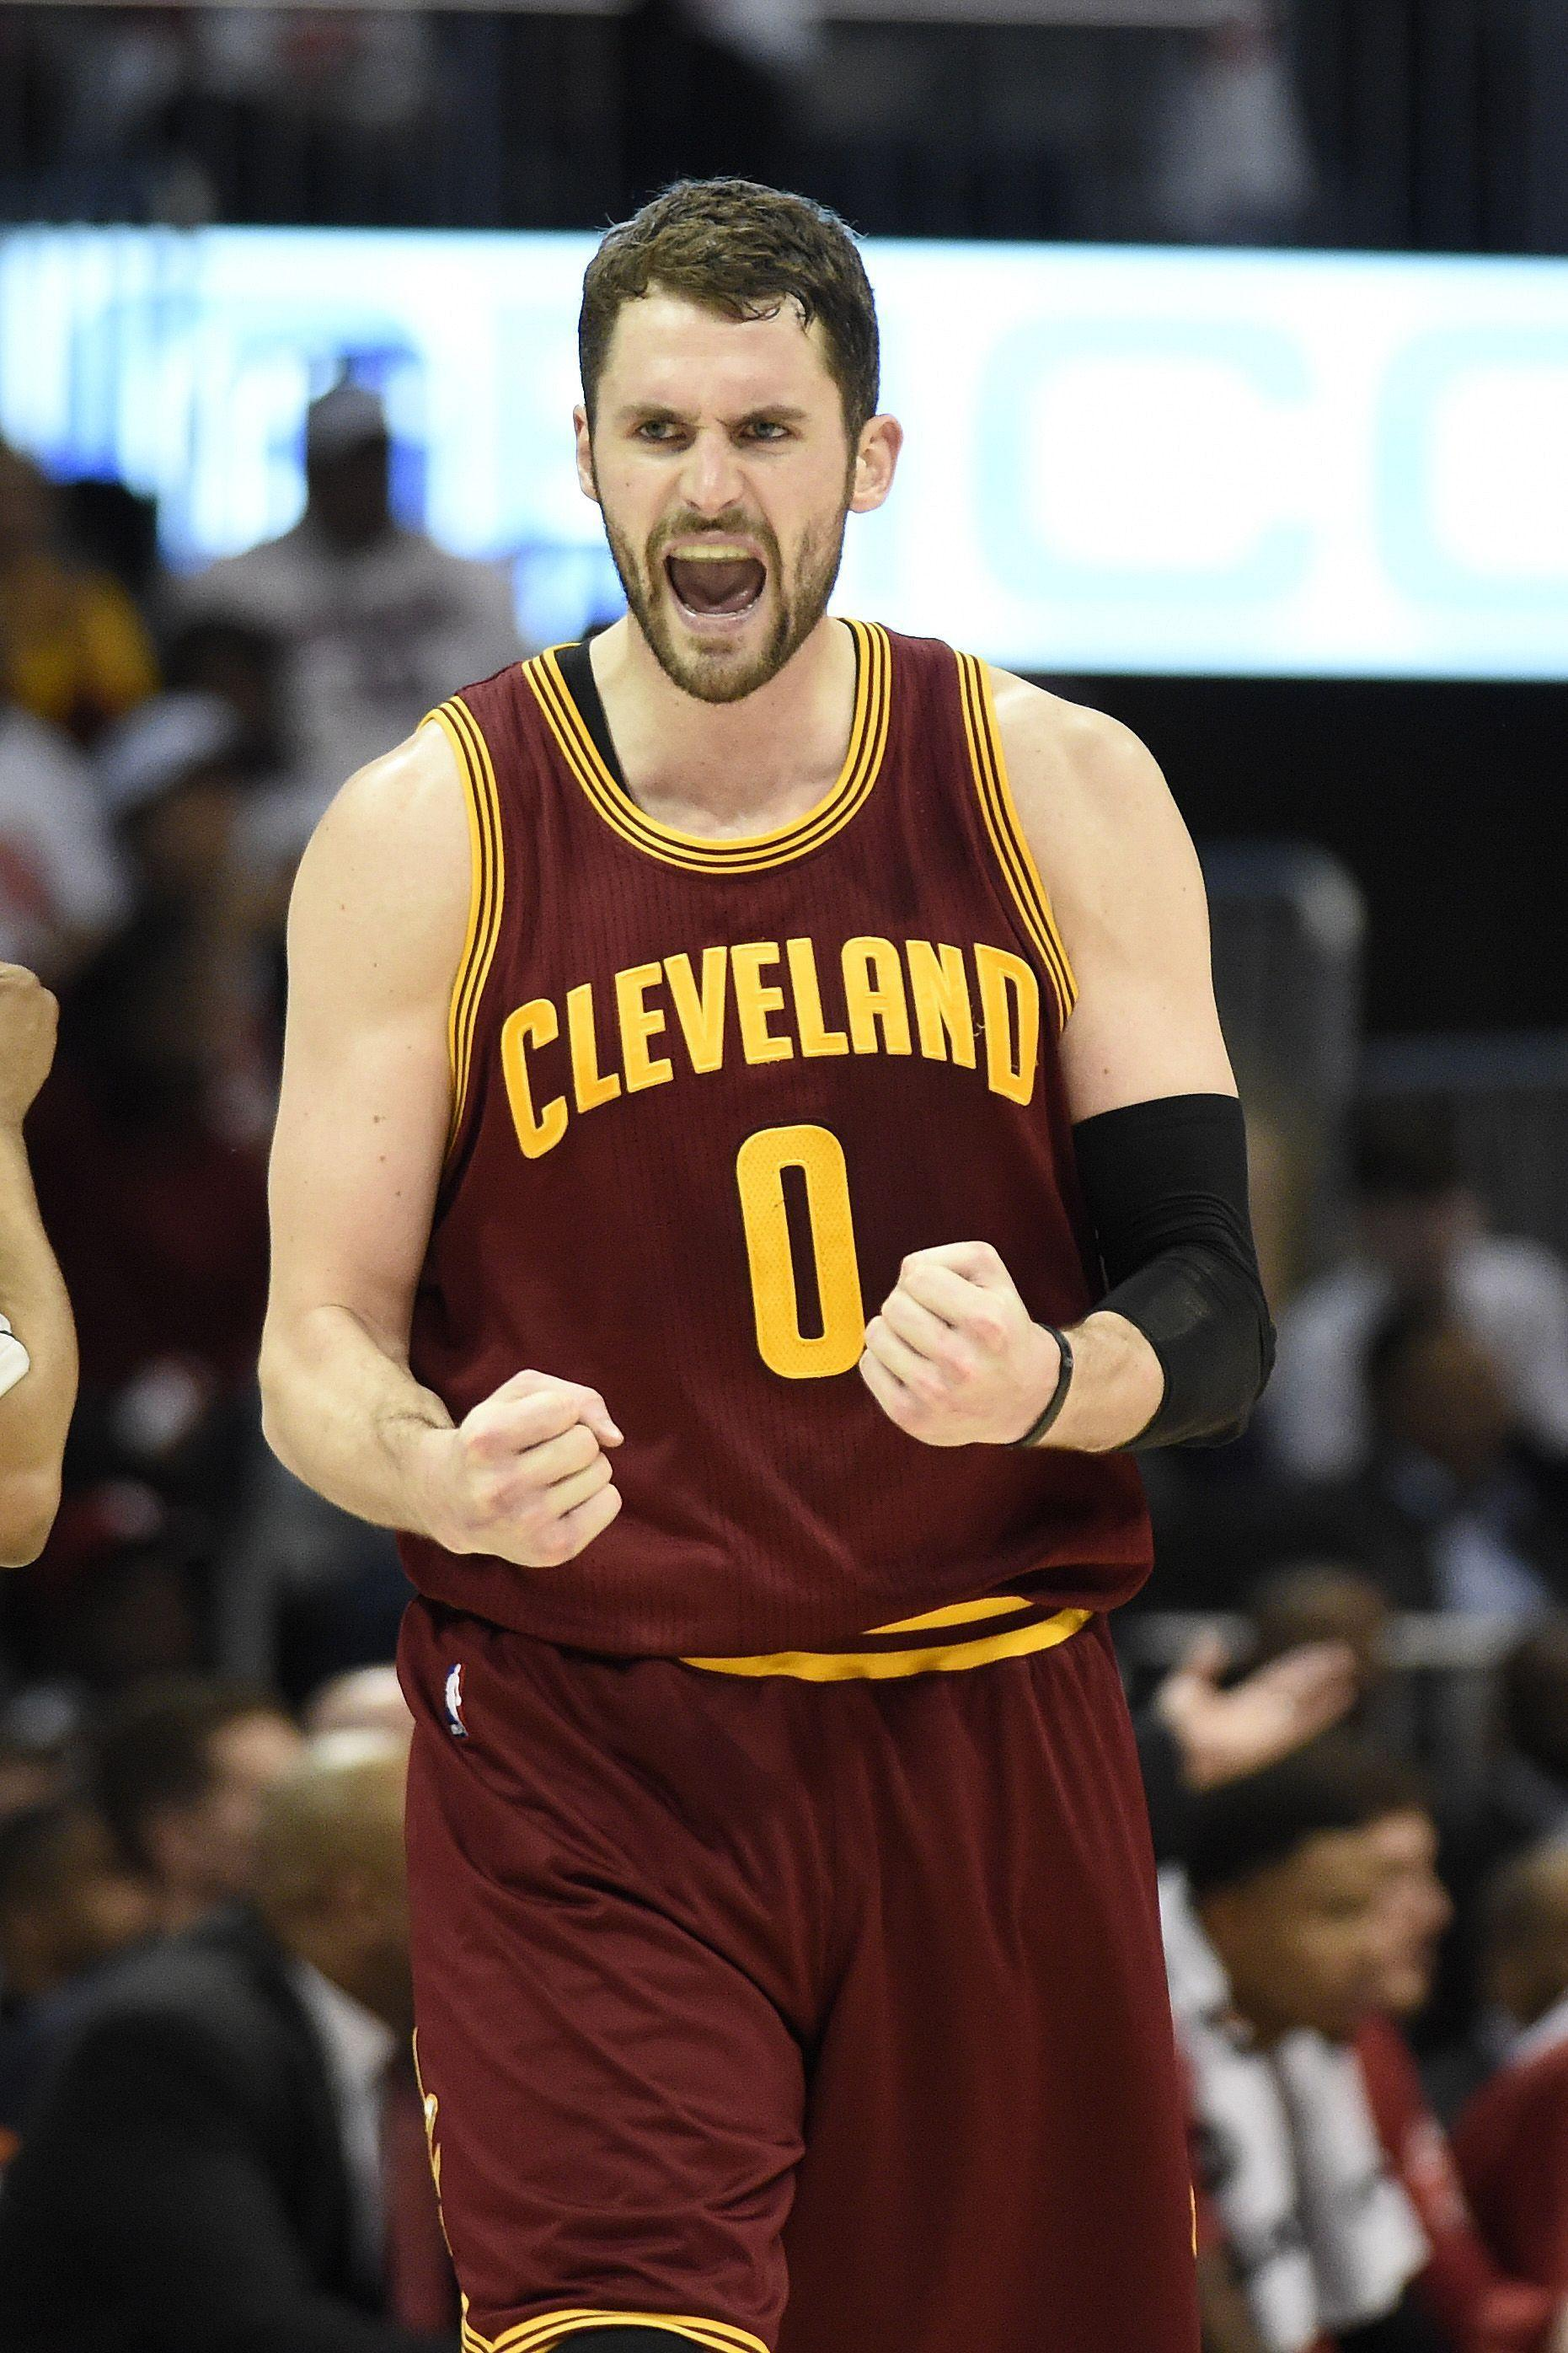 Kevin Love Iphone Wallpaper : Kevin Love 2016 Wallpapers - Wallpaper cave